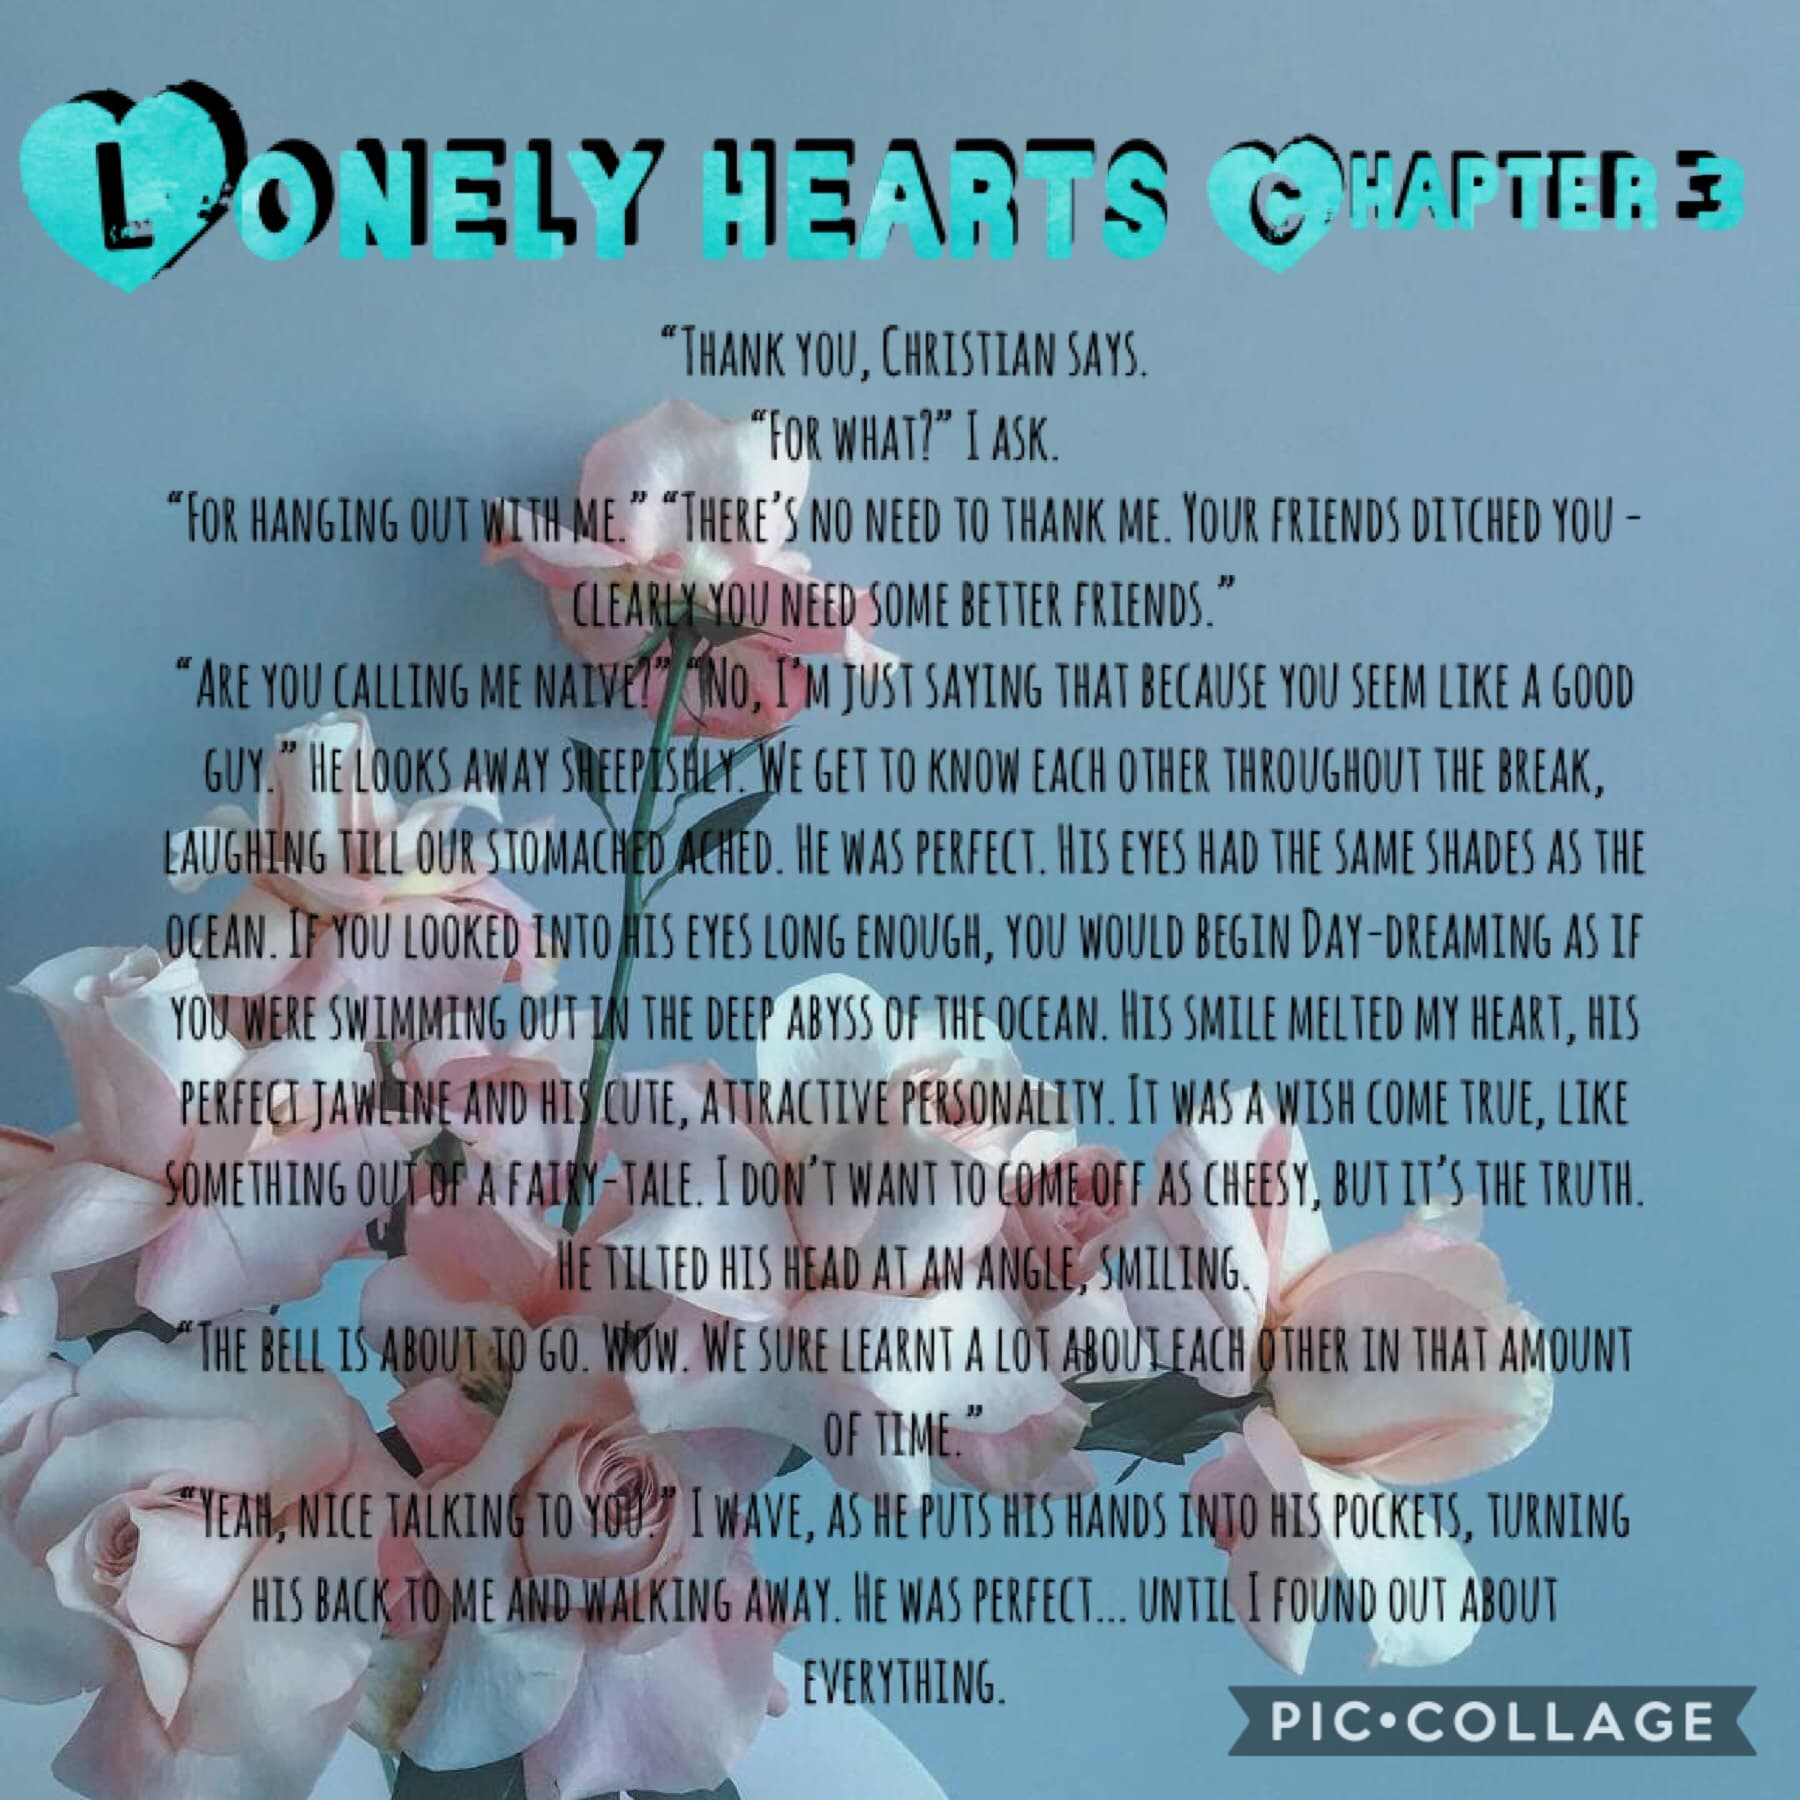 🥳TAP🥳  HAPPY NEW YEAR EVERYBODY!!  Third chapter of Lonely Hearts. See what happens next in my next chapter - soon to come!